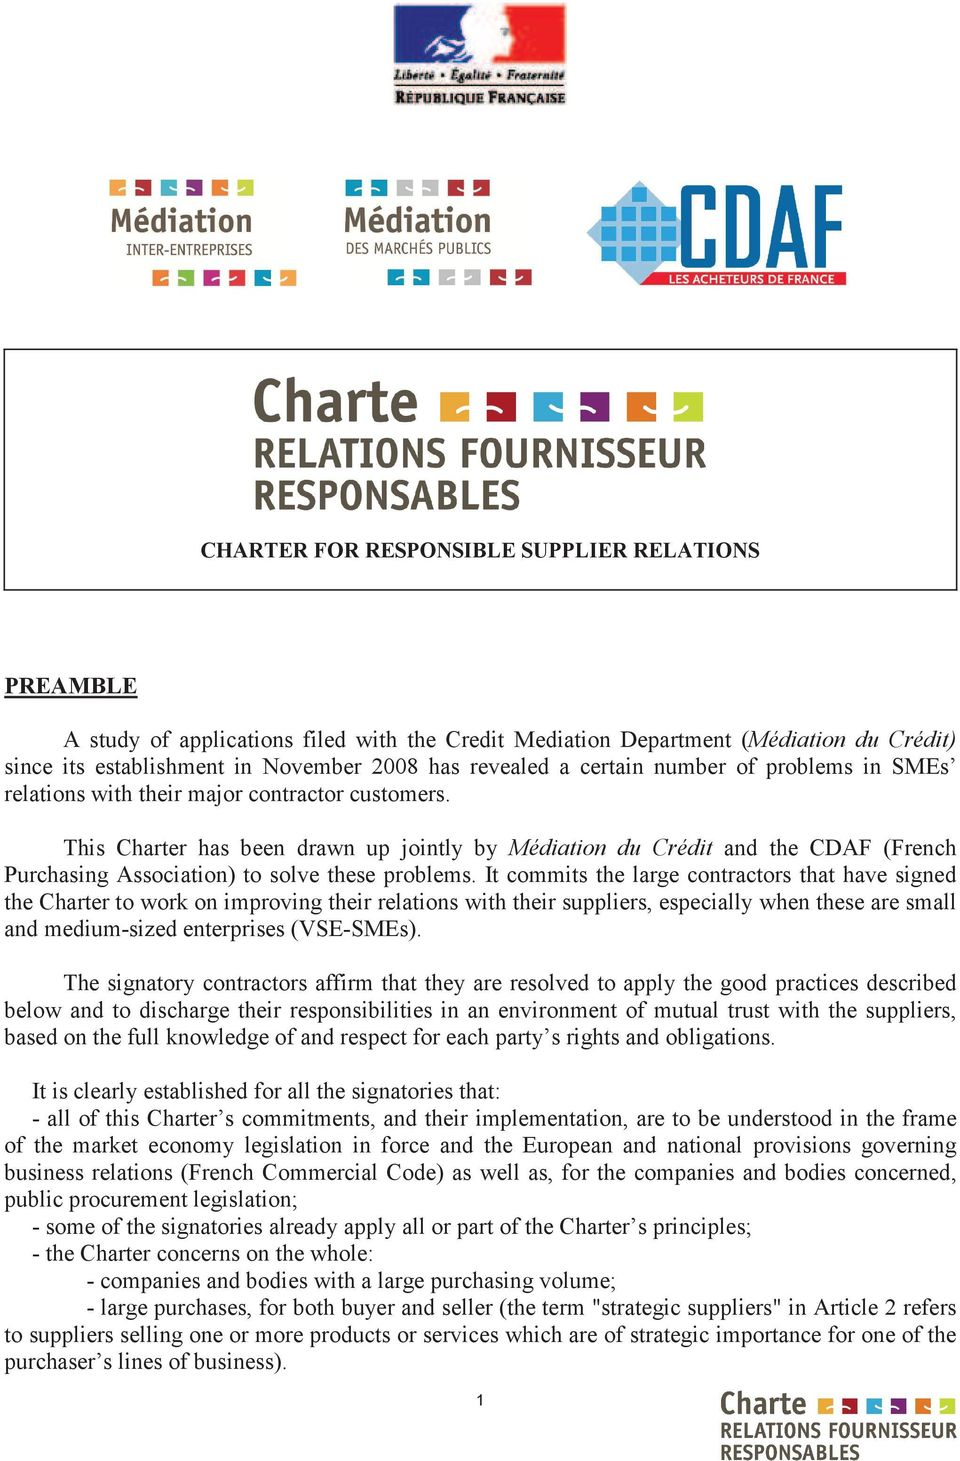 This Charter has been drawn up jointly by Médiation du Crédit and the CDAF (French Purchasing Association) to solve these problems.